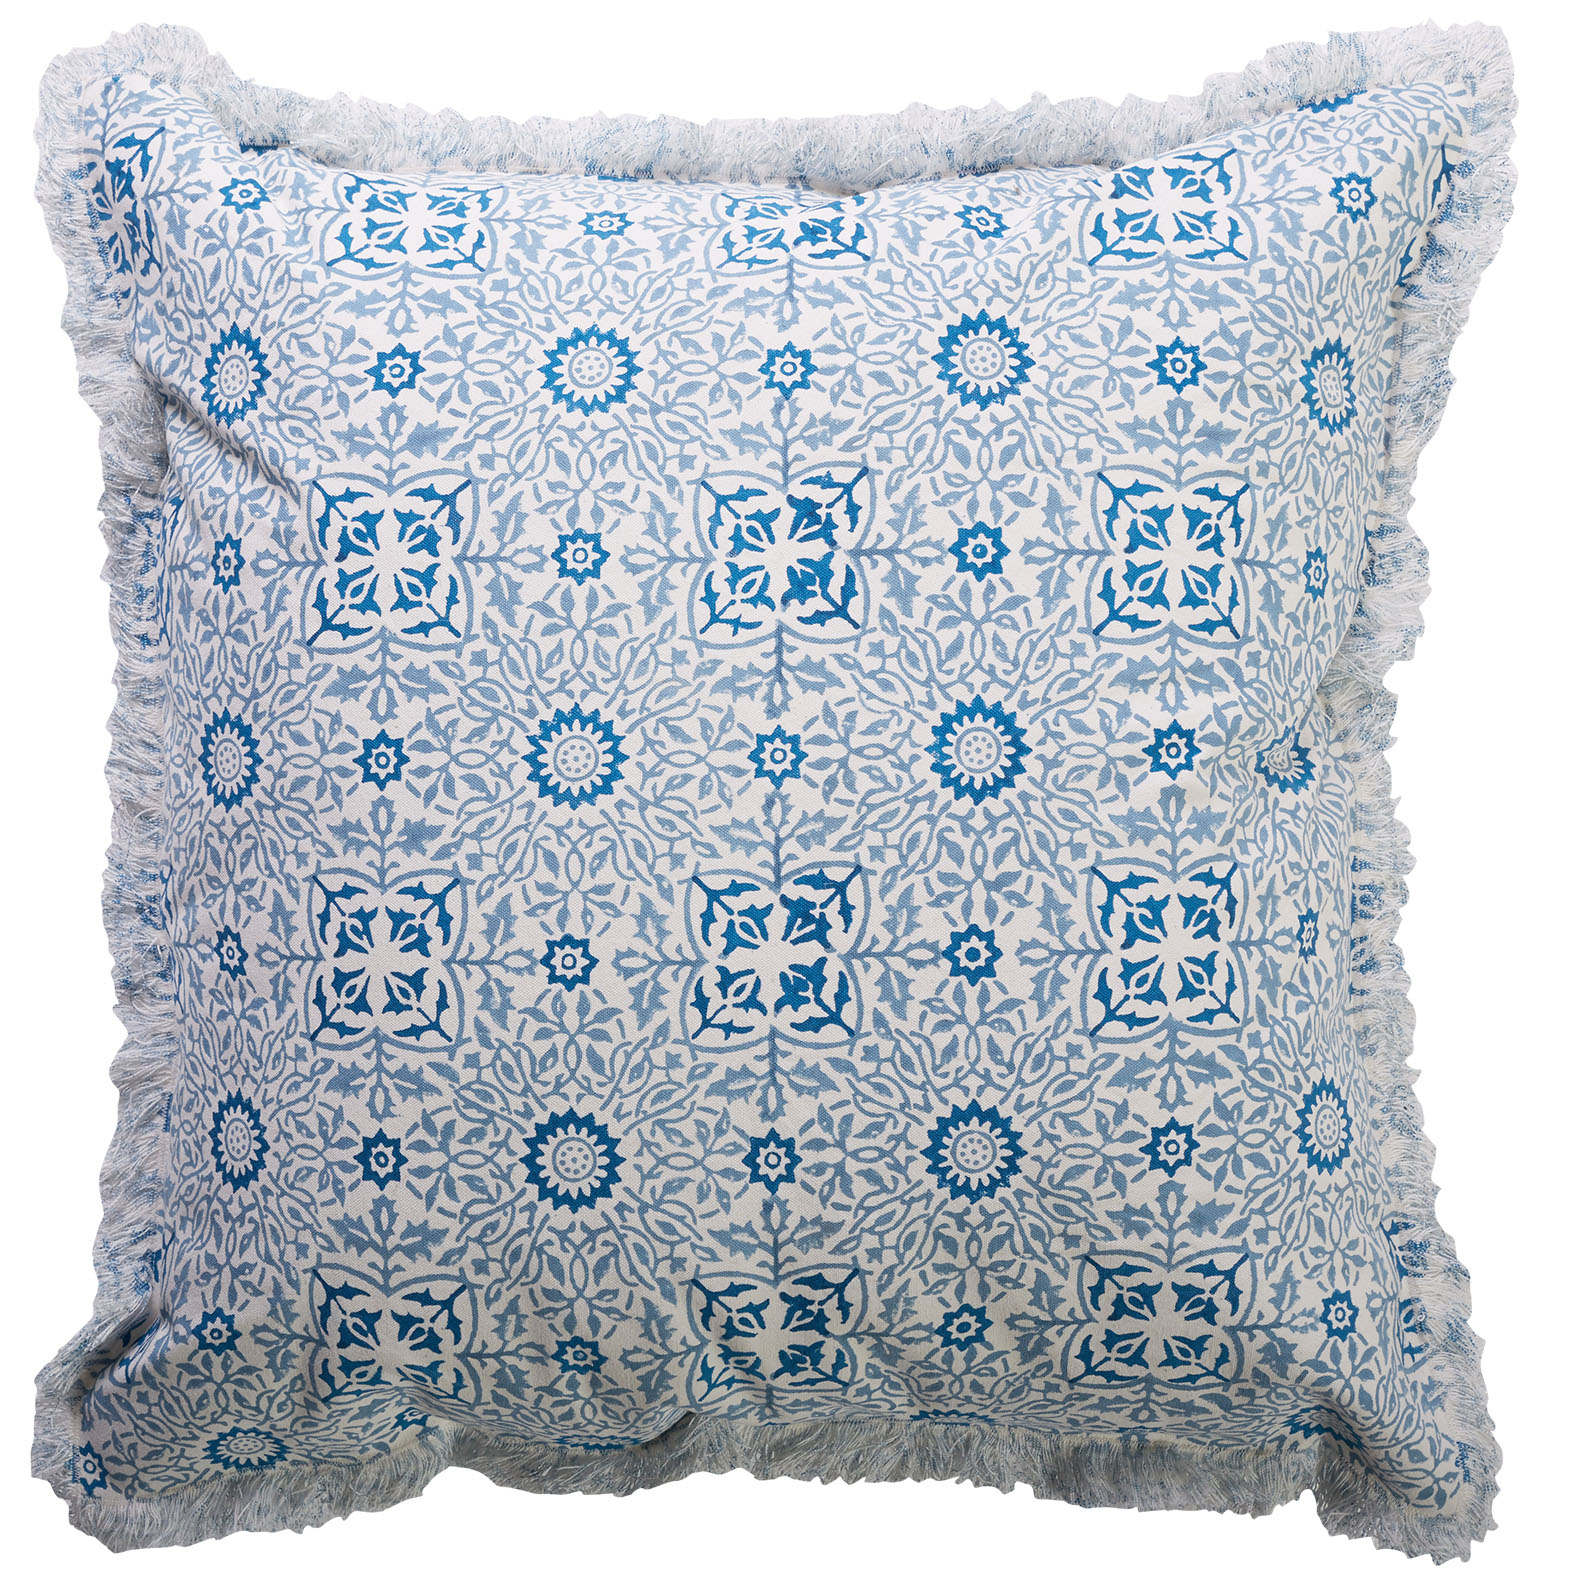 Burleigh Wisteria Cushion